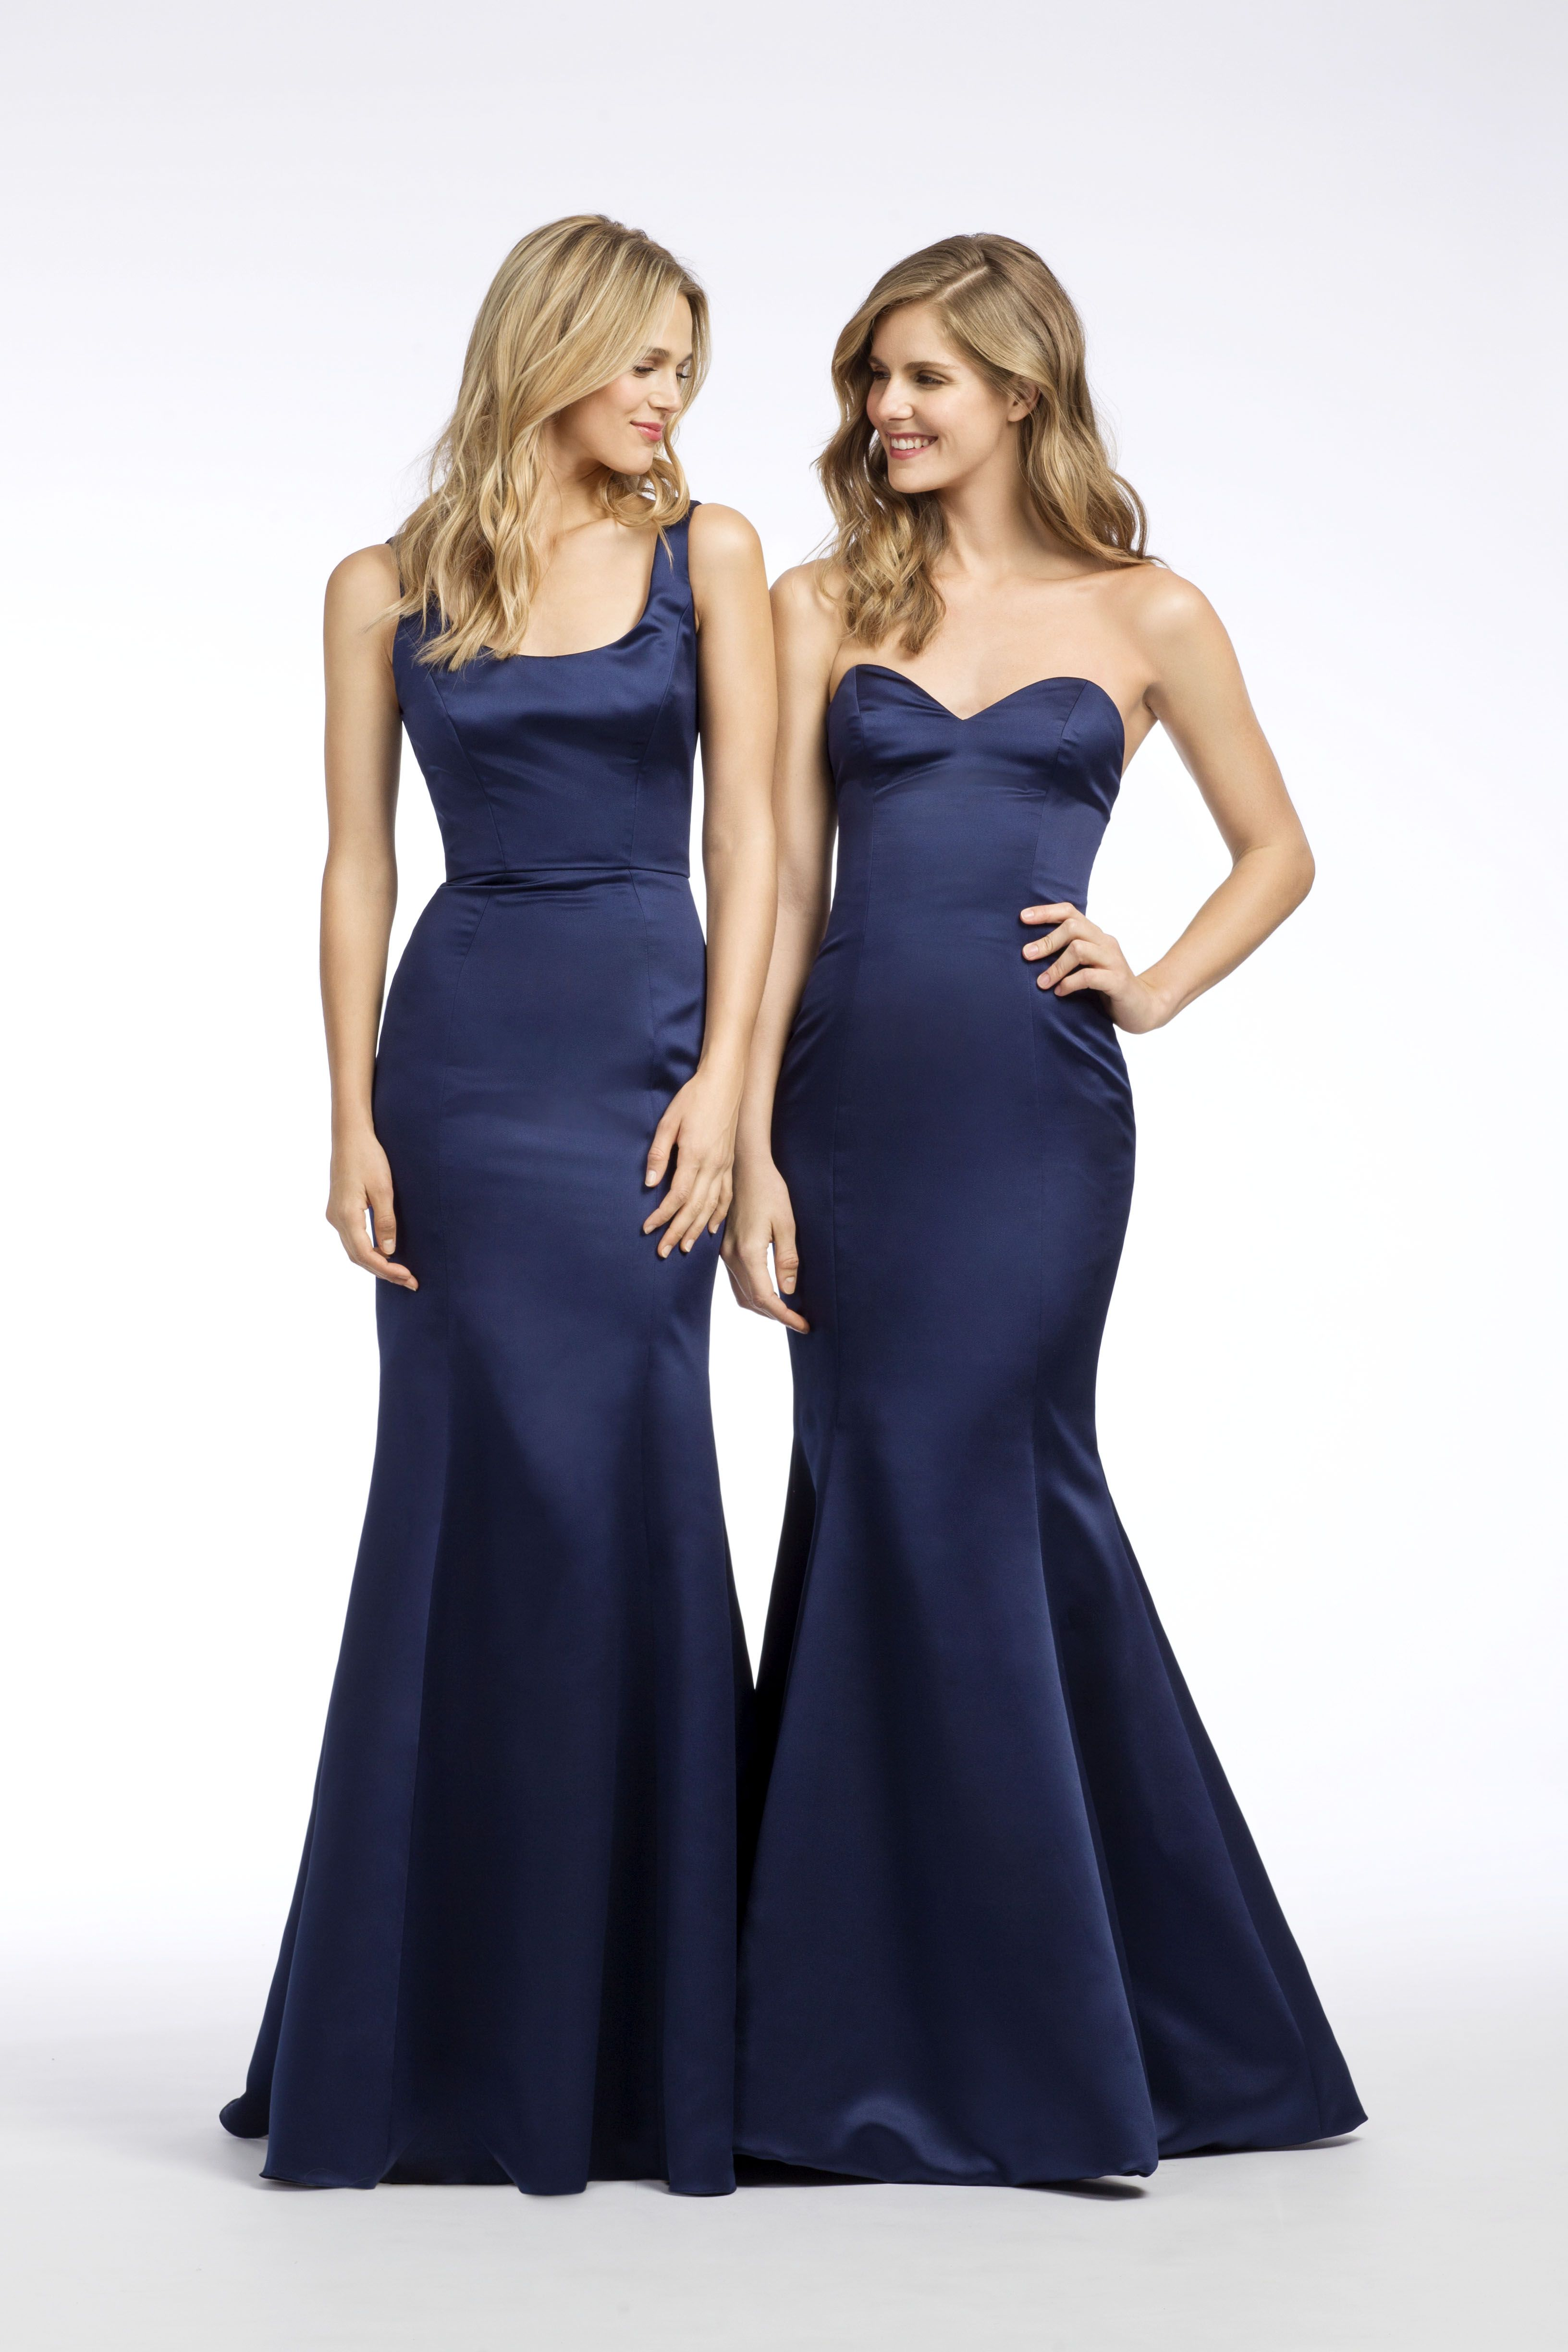 Styles 5667   5668 in Indigo satin - Long dress  bridesmaid  bridesmaids   bridalparty  longdresses  hayleypaigeoccasions  jlmcouture  hayleypaige    ... cca8f02bc48b